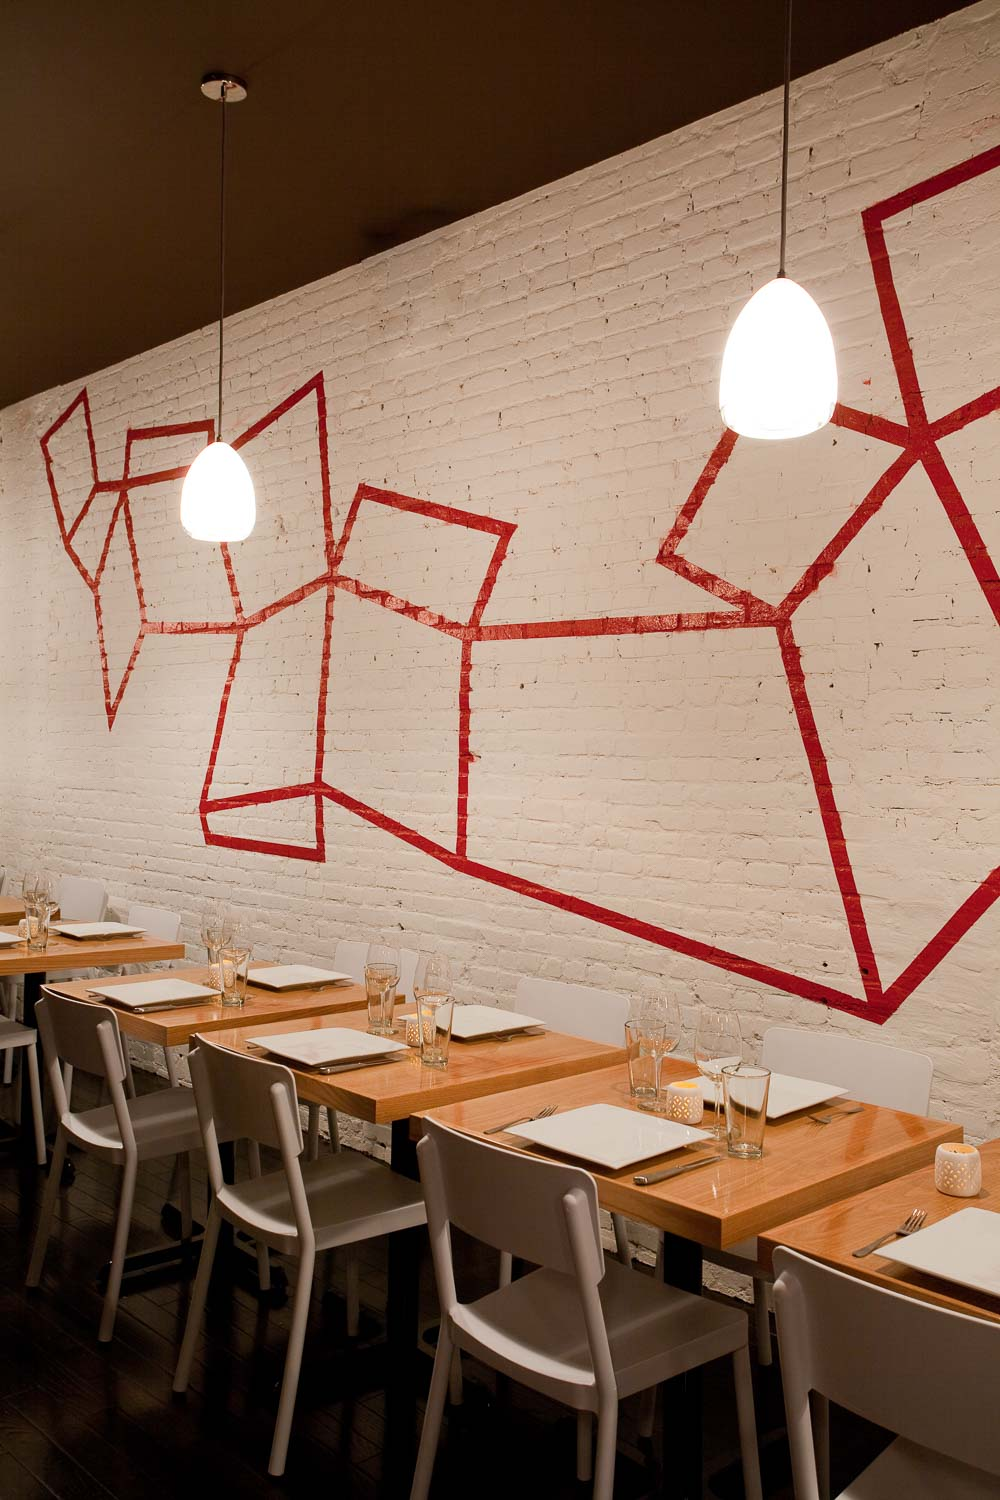 An Interior View of the Tables and the Graffiti Wall by Sergio Mannino